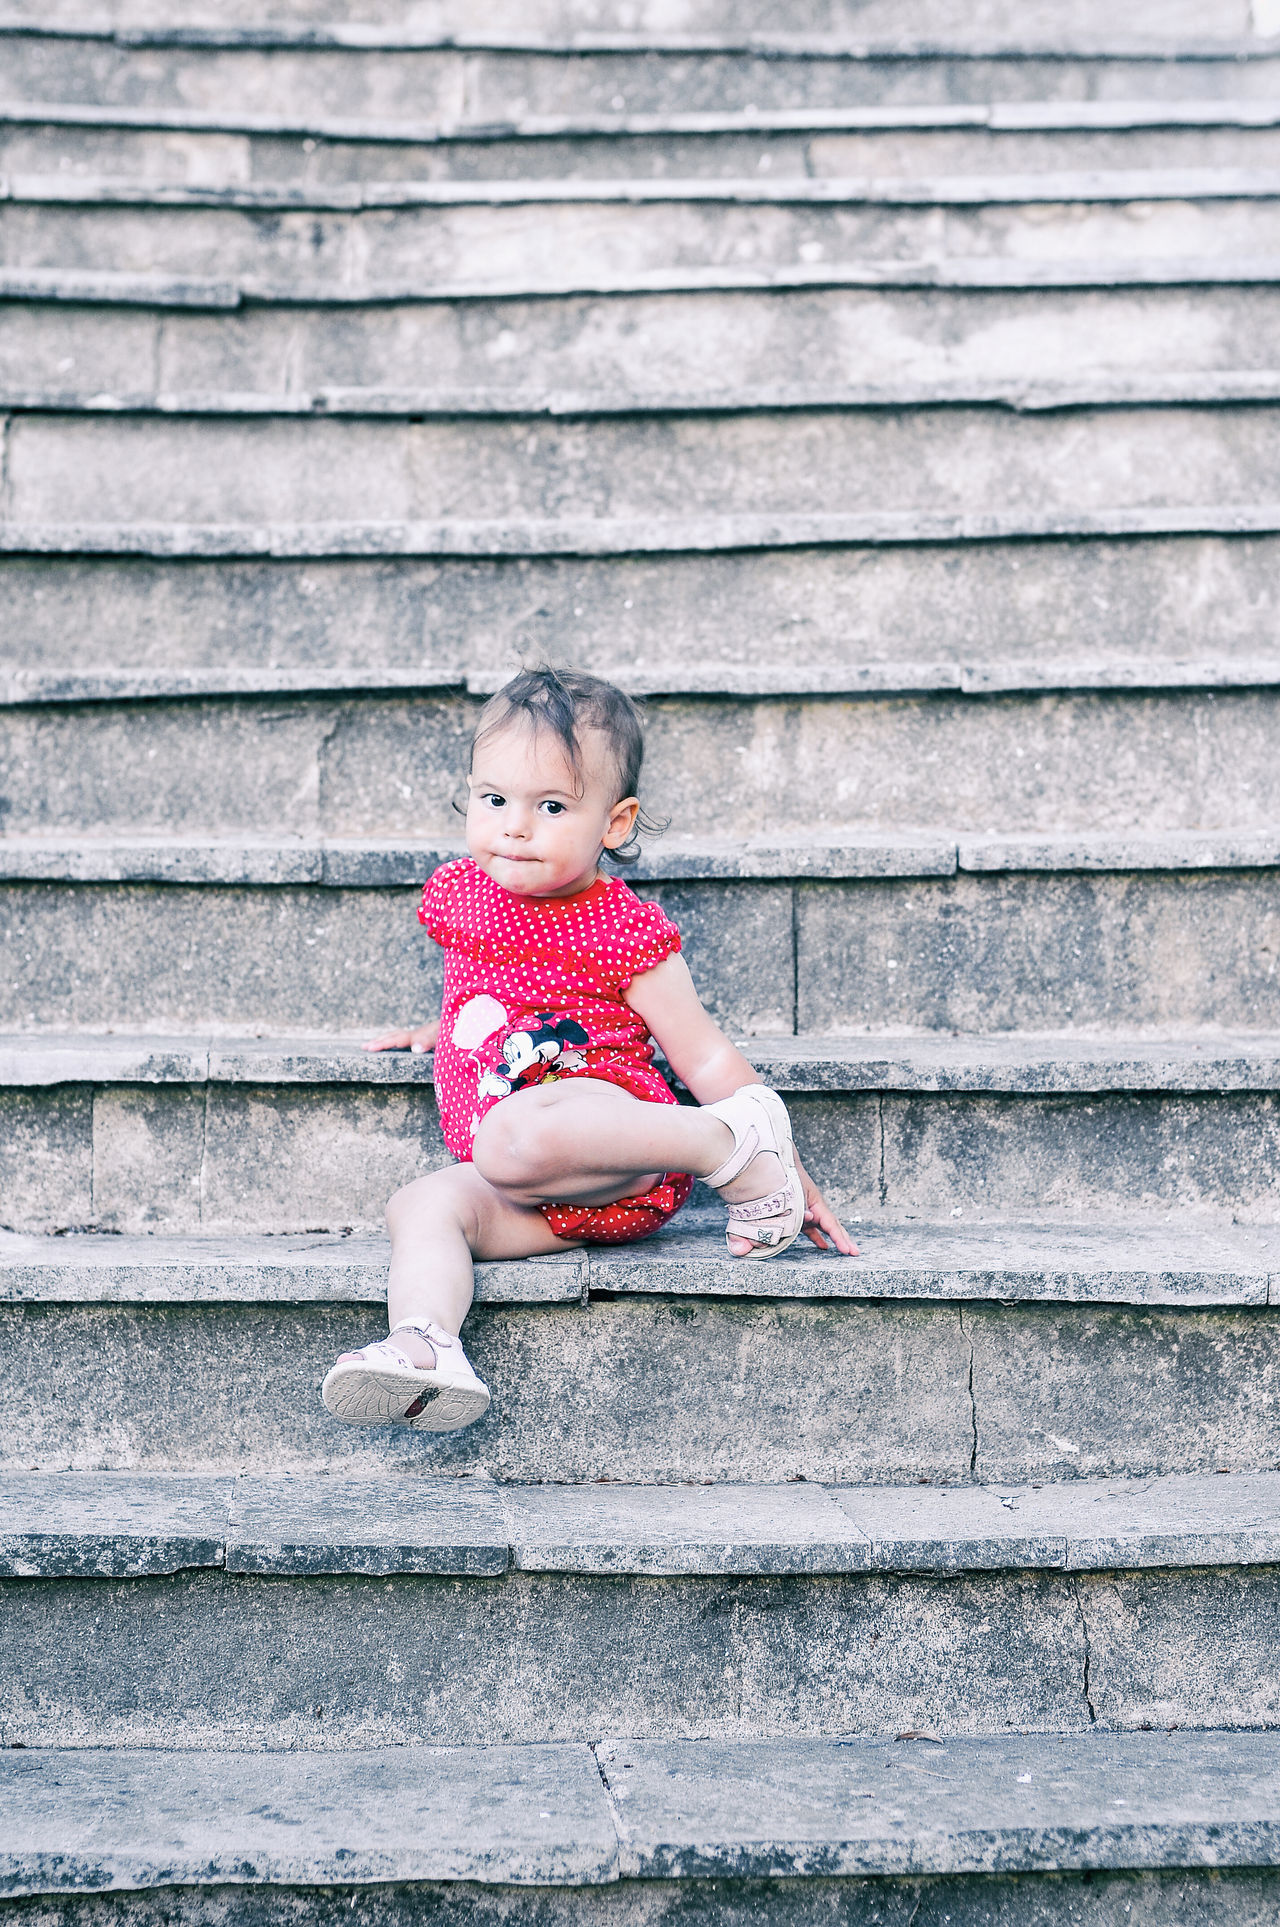 A cute baby girl sitting at stairs. Baby Girl Baby Portrait Childhood Chilling At Stairs Cute Girl Happiness Kid Happiness Kid Posing Only Red Red Dress Red Only Sitting At Stairs Kid Smile EyEmNewHere The Portraitist - 2017 EyeEm Awards